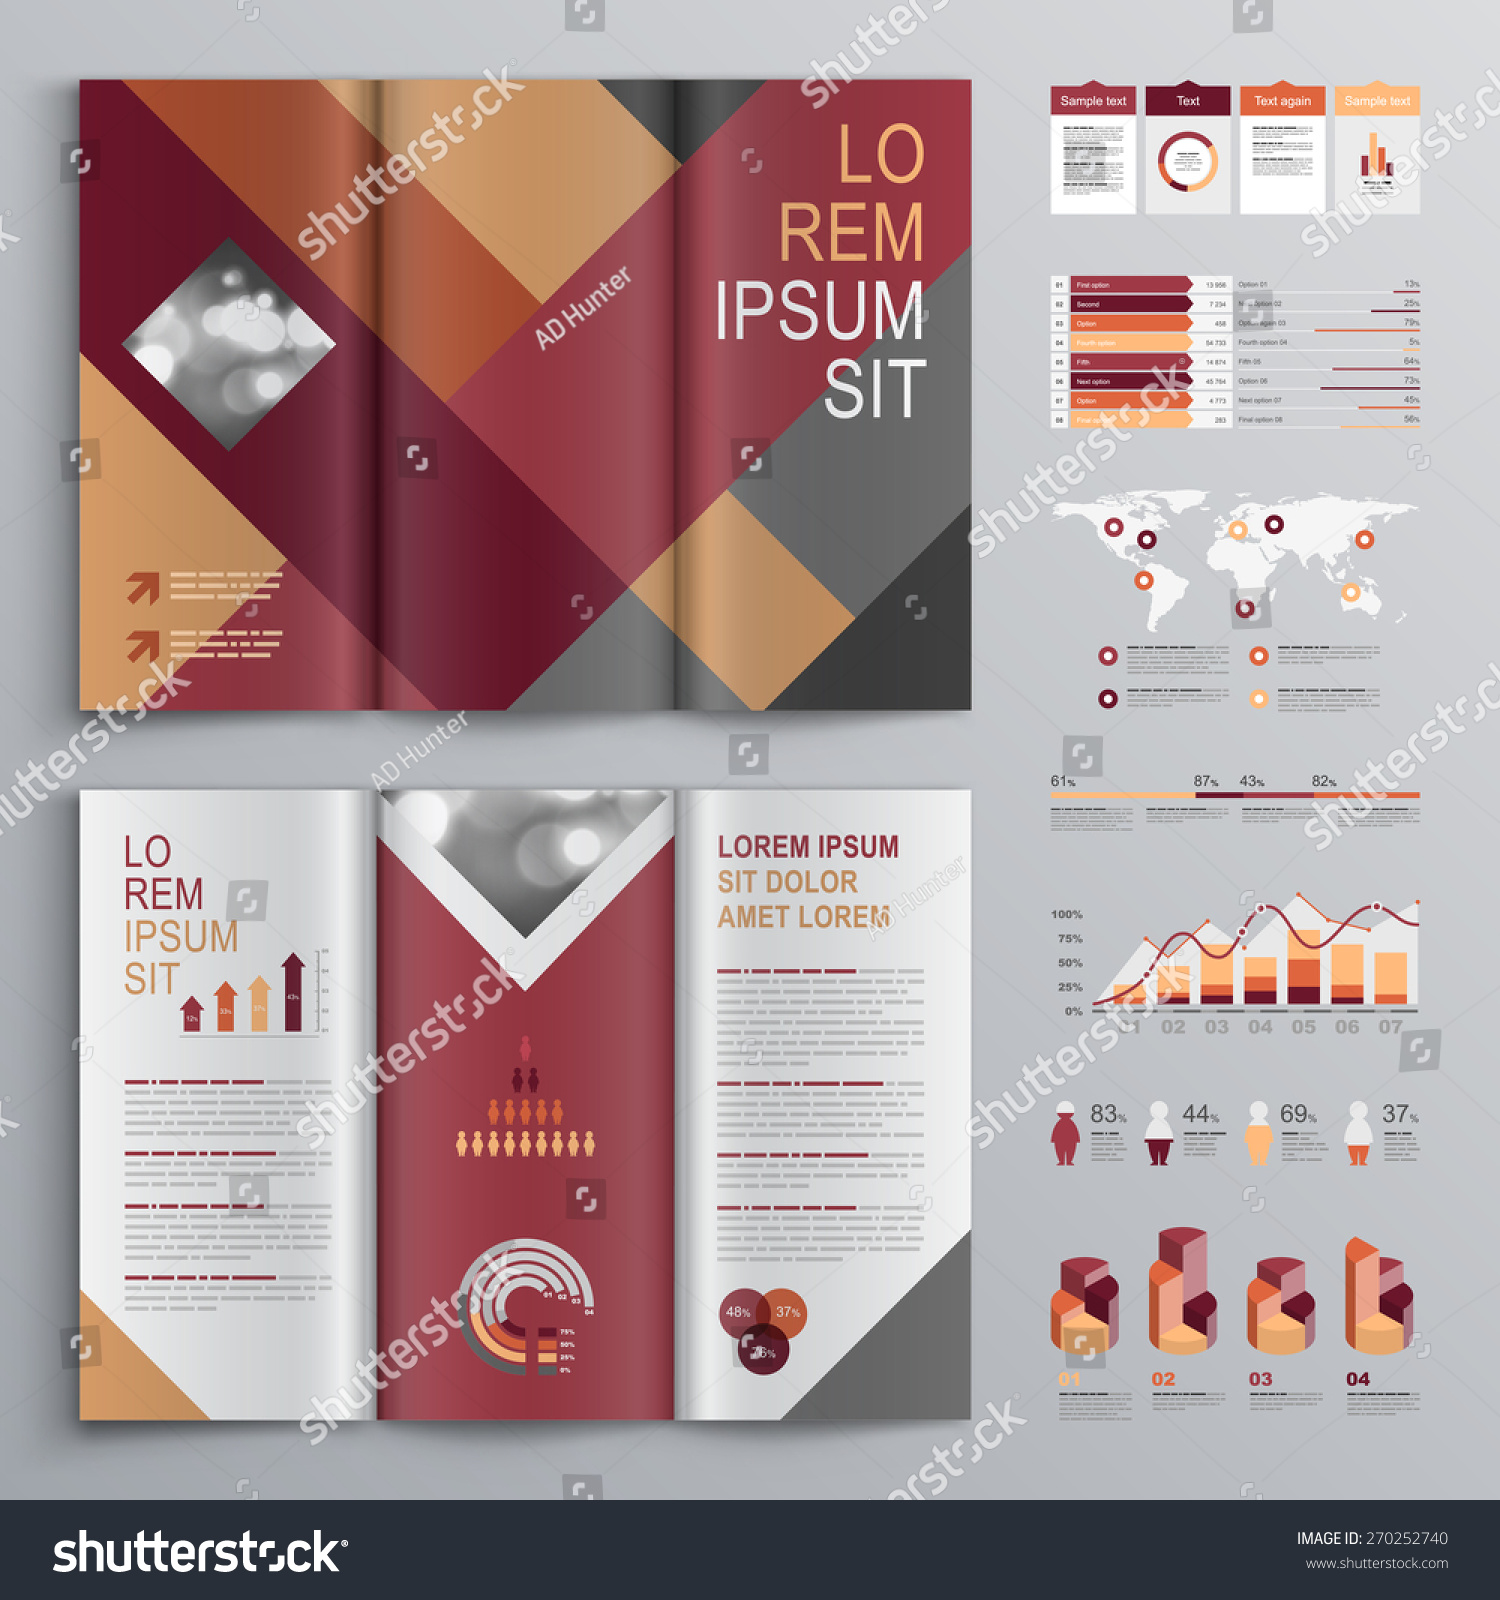 fashion brochure templates - fashion brochure template design red gray stock vector